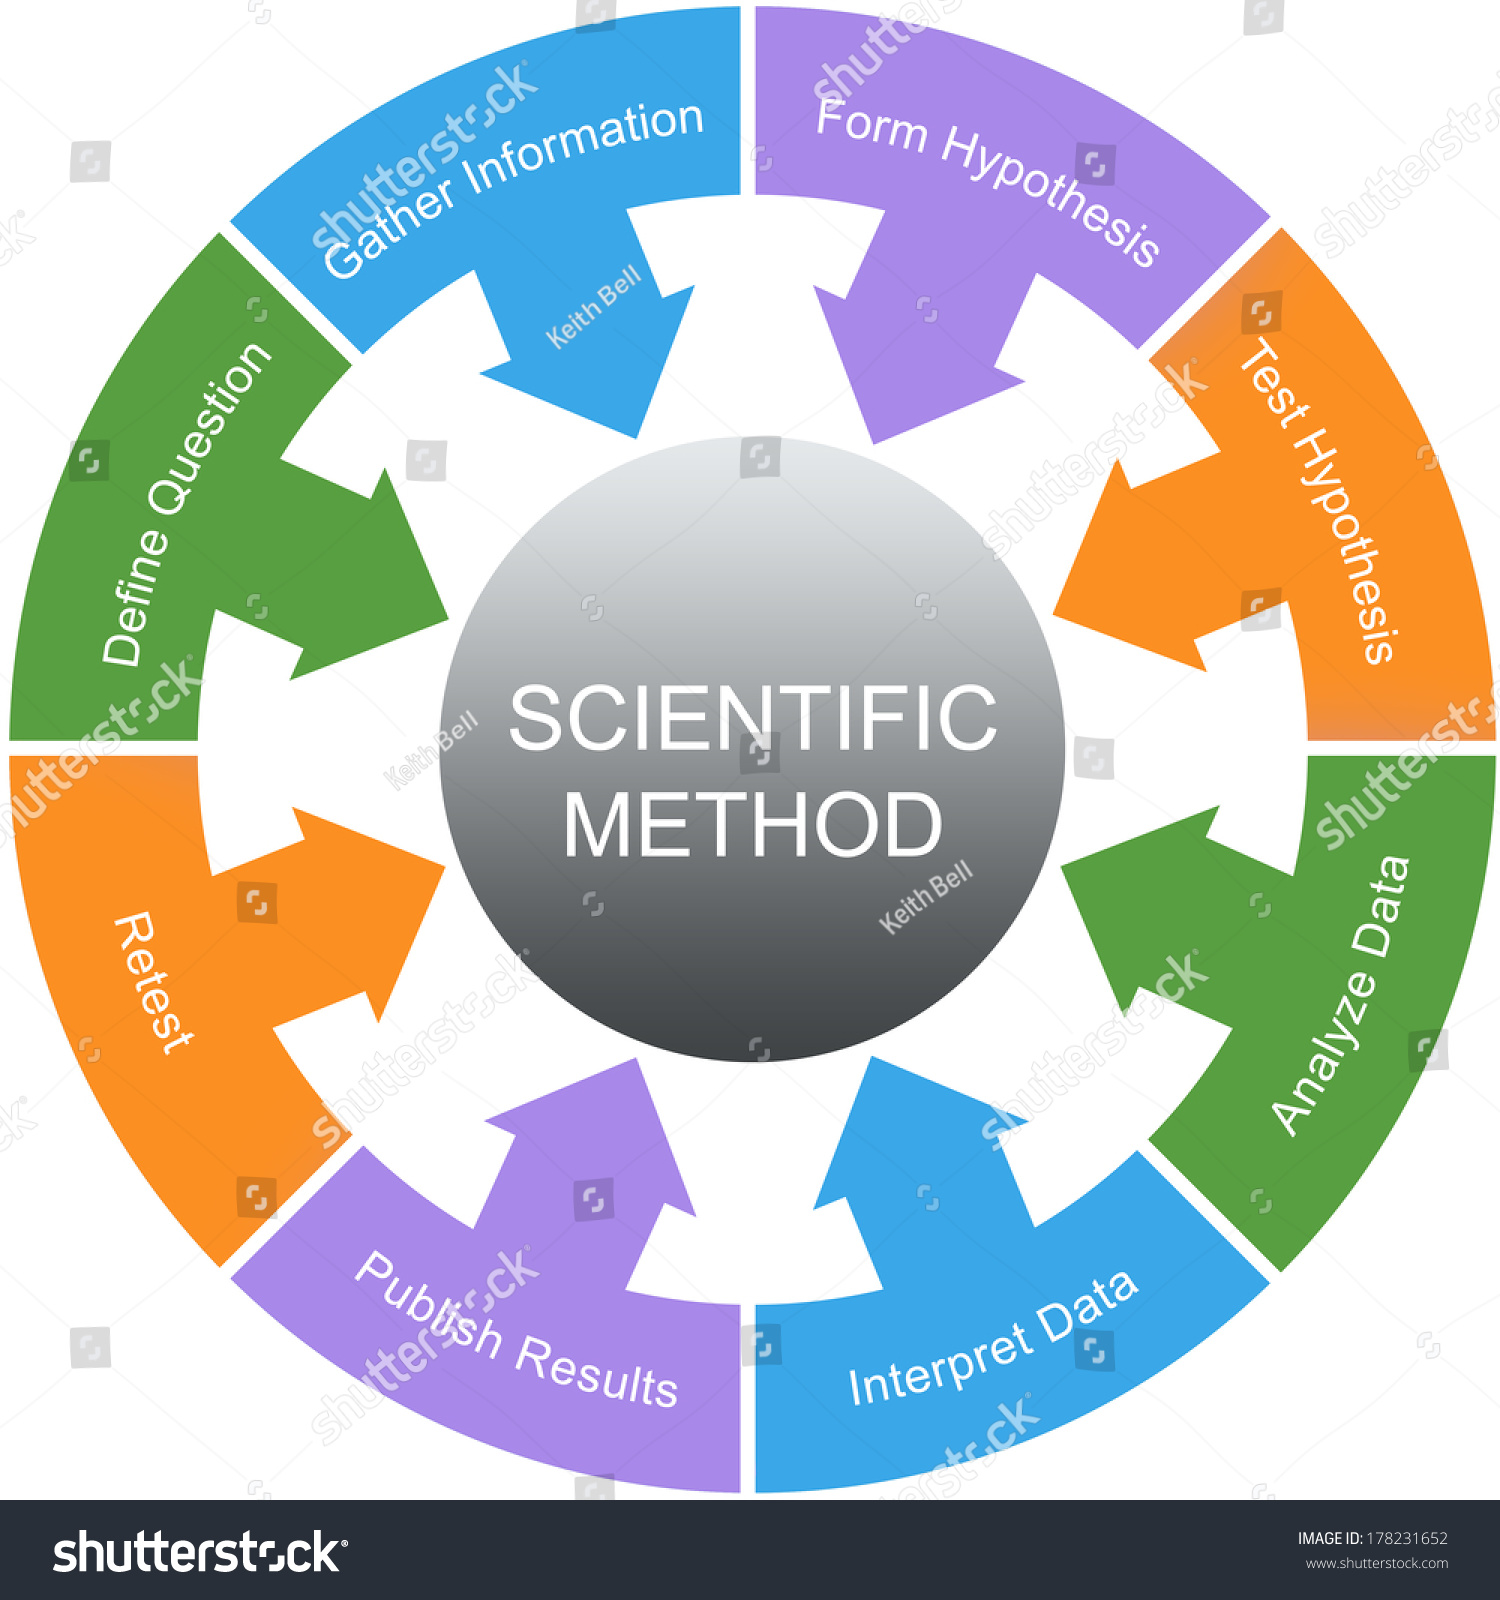 Scientific Method Word Circle Concept With Great Terms Such As Retest Hypothesis And More